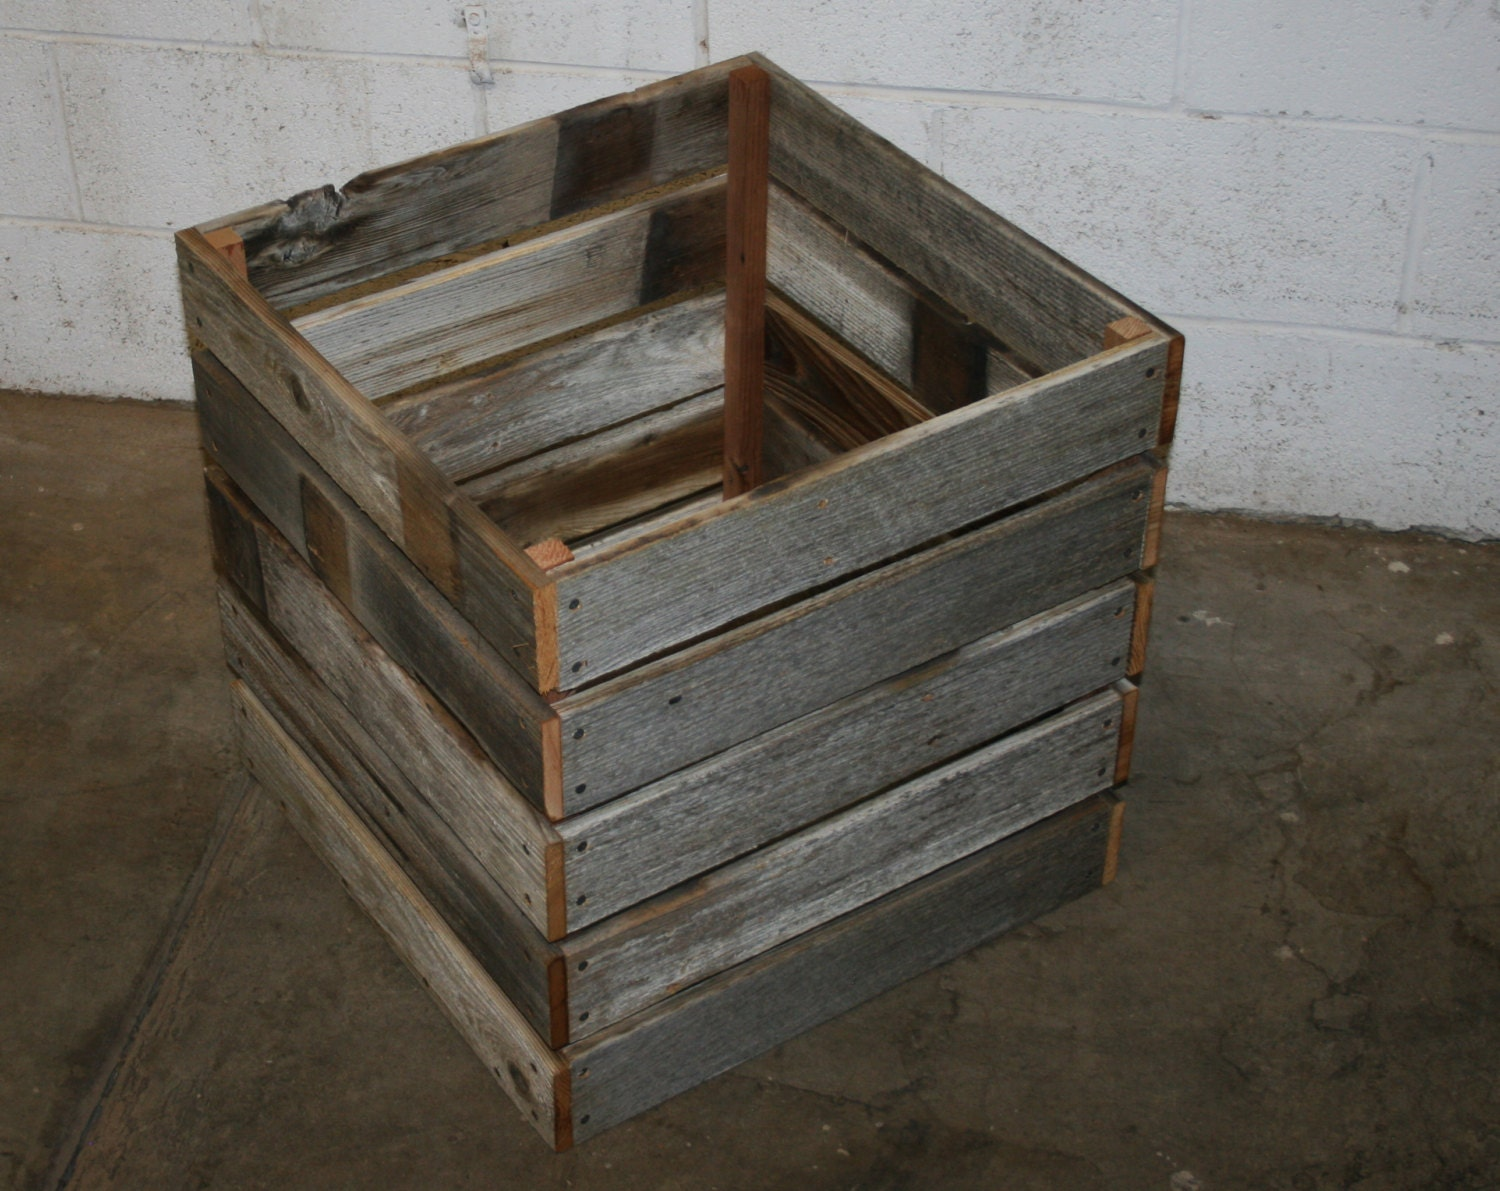 barn wood milk crate 20 x 20 x 20 by lunarcanyon on etsy. Black Bedroom Furniture Sets. Home Design Ideas